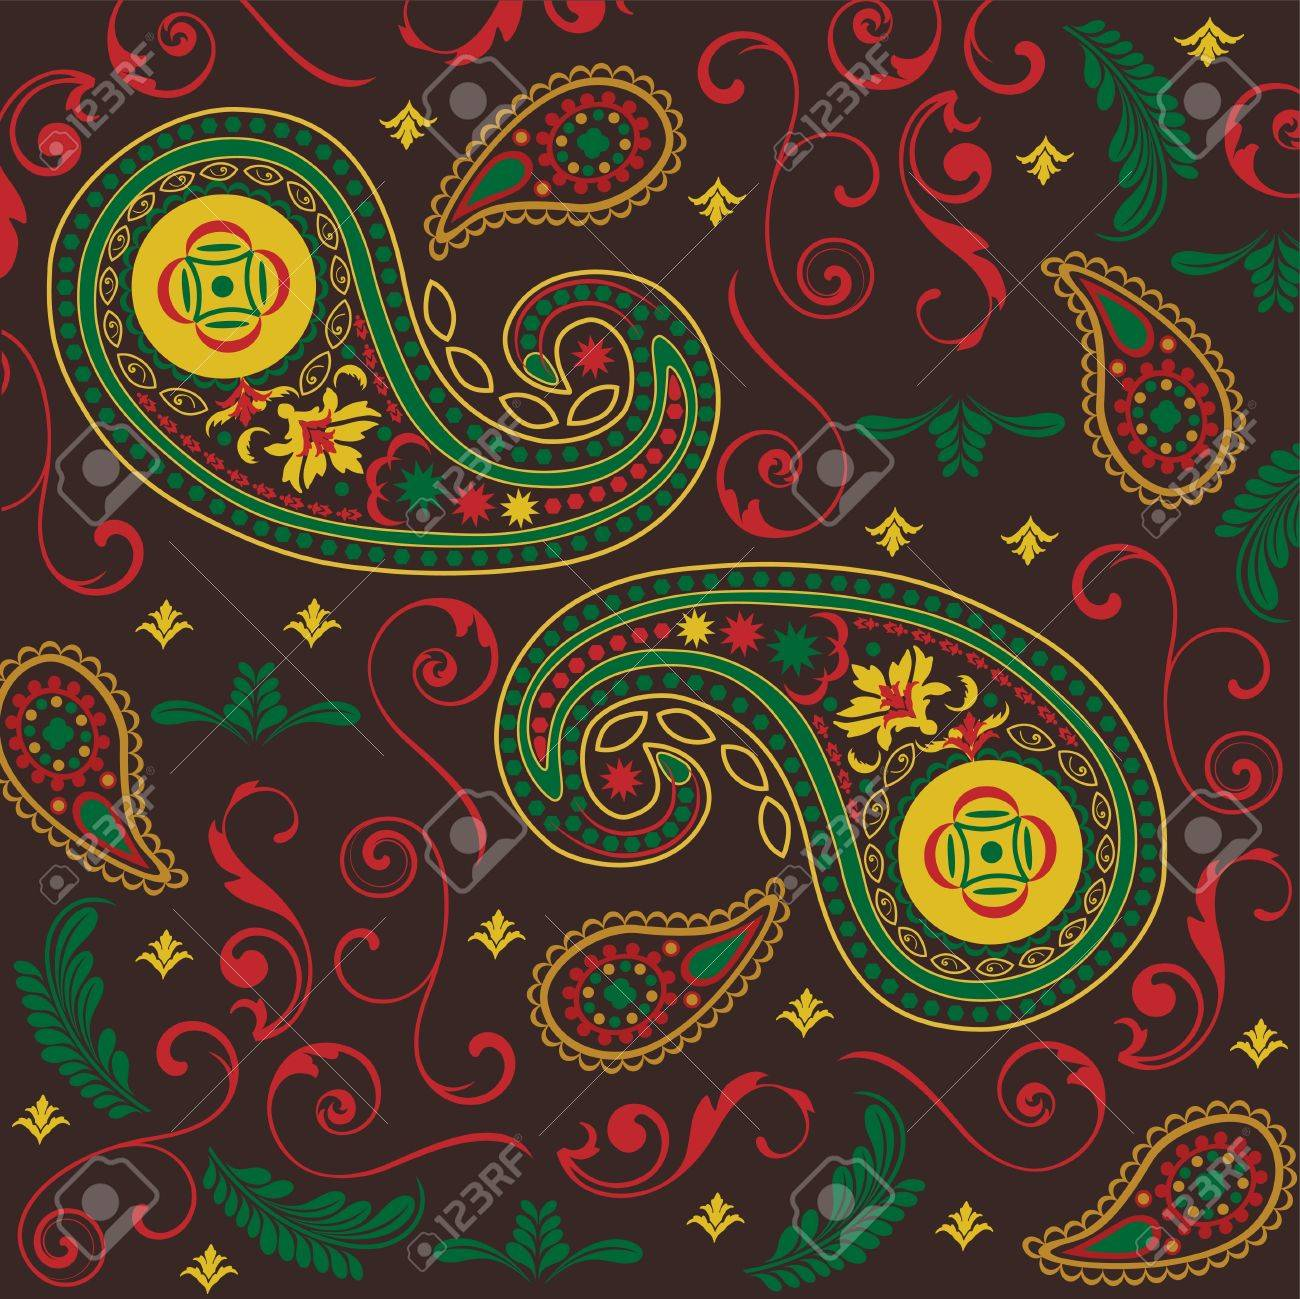 Christmas Paisley in Black Stock Vector - 13324621